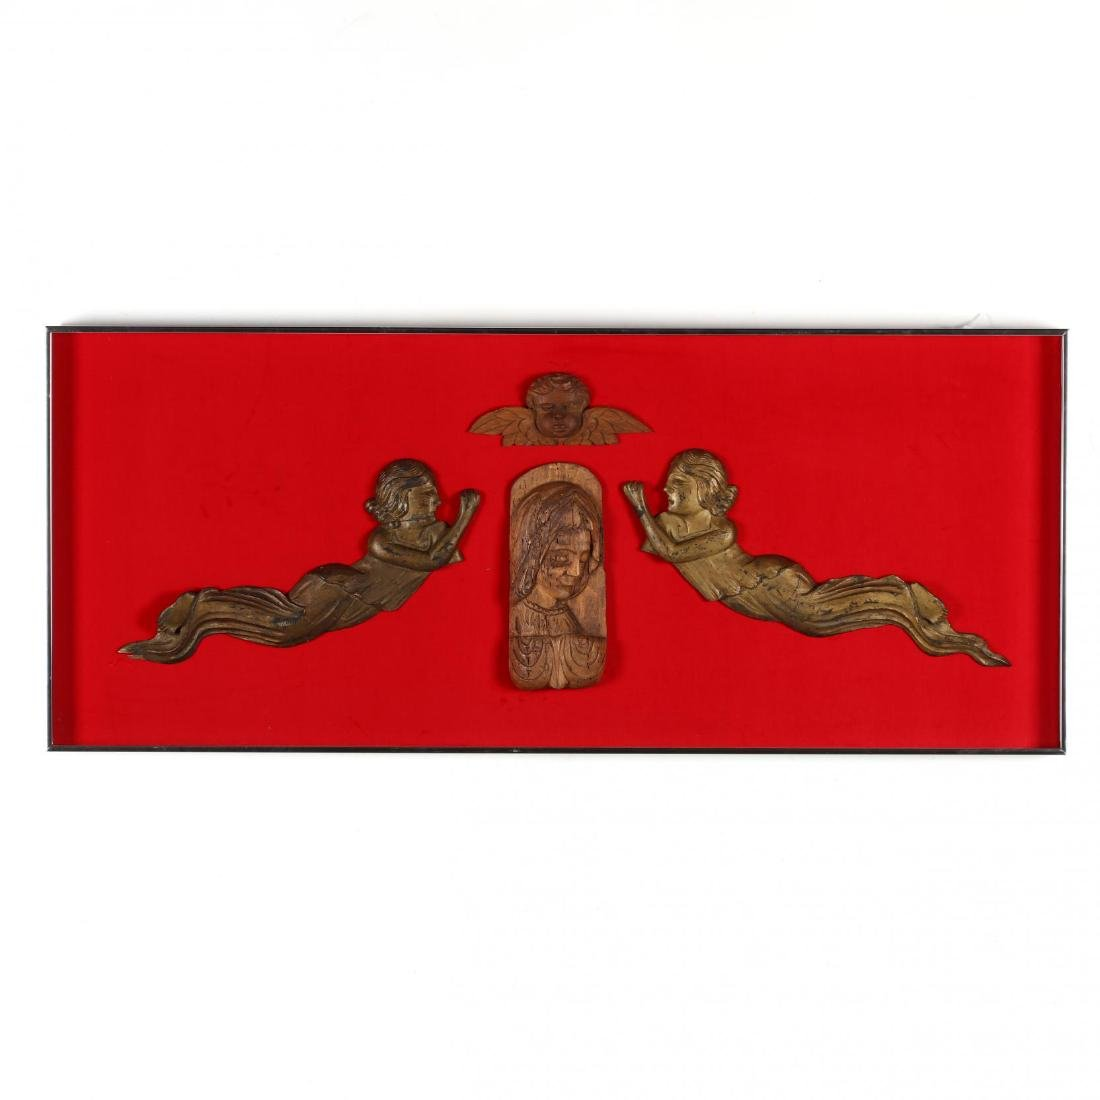 Framed Relief Wall Hanging with Devotional Subjects